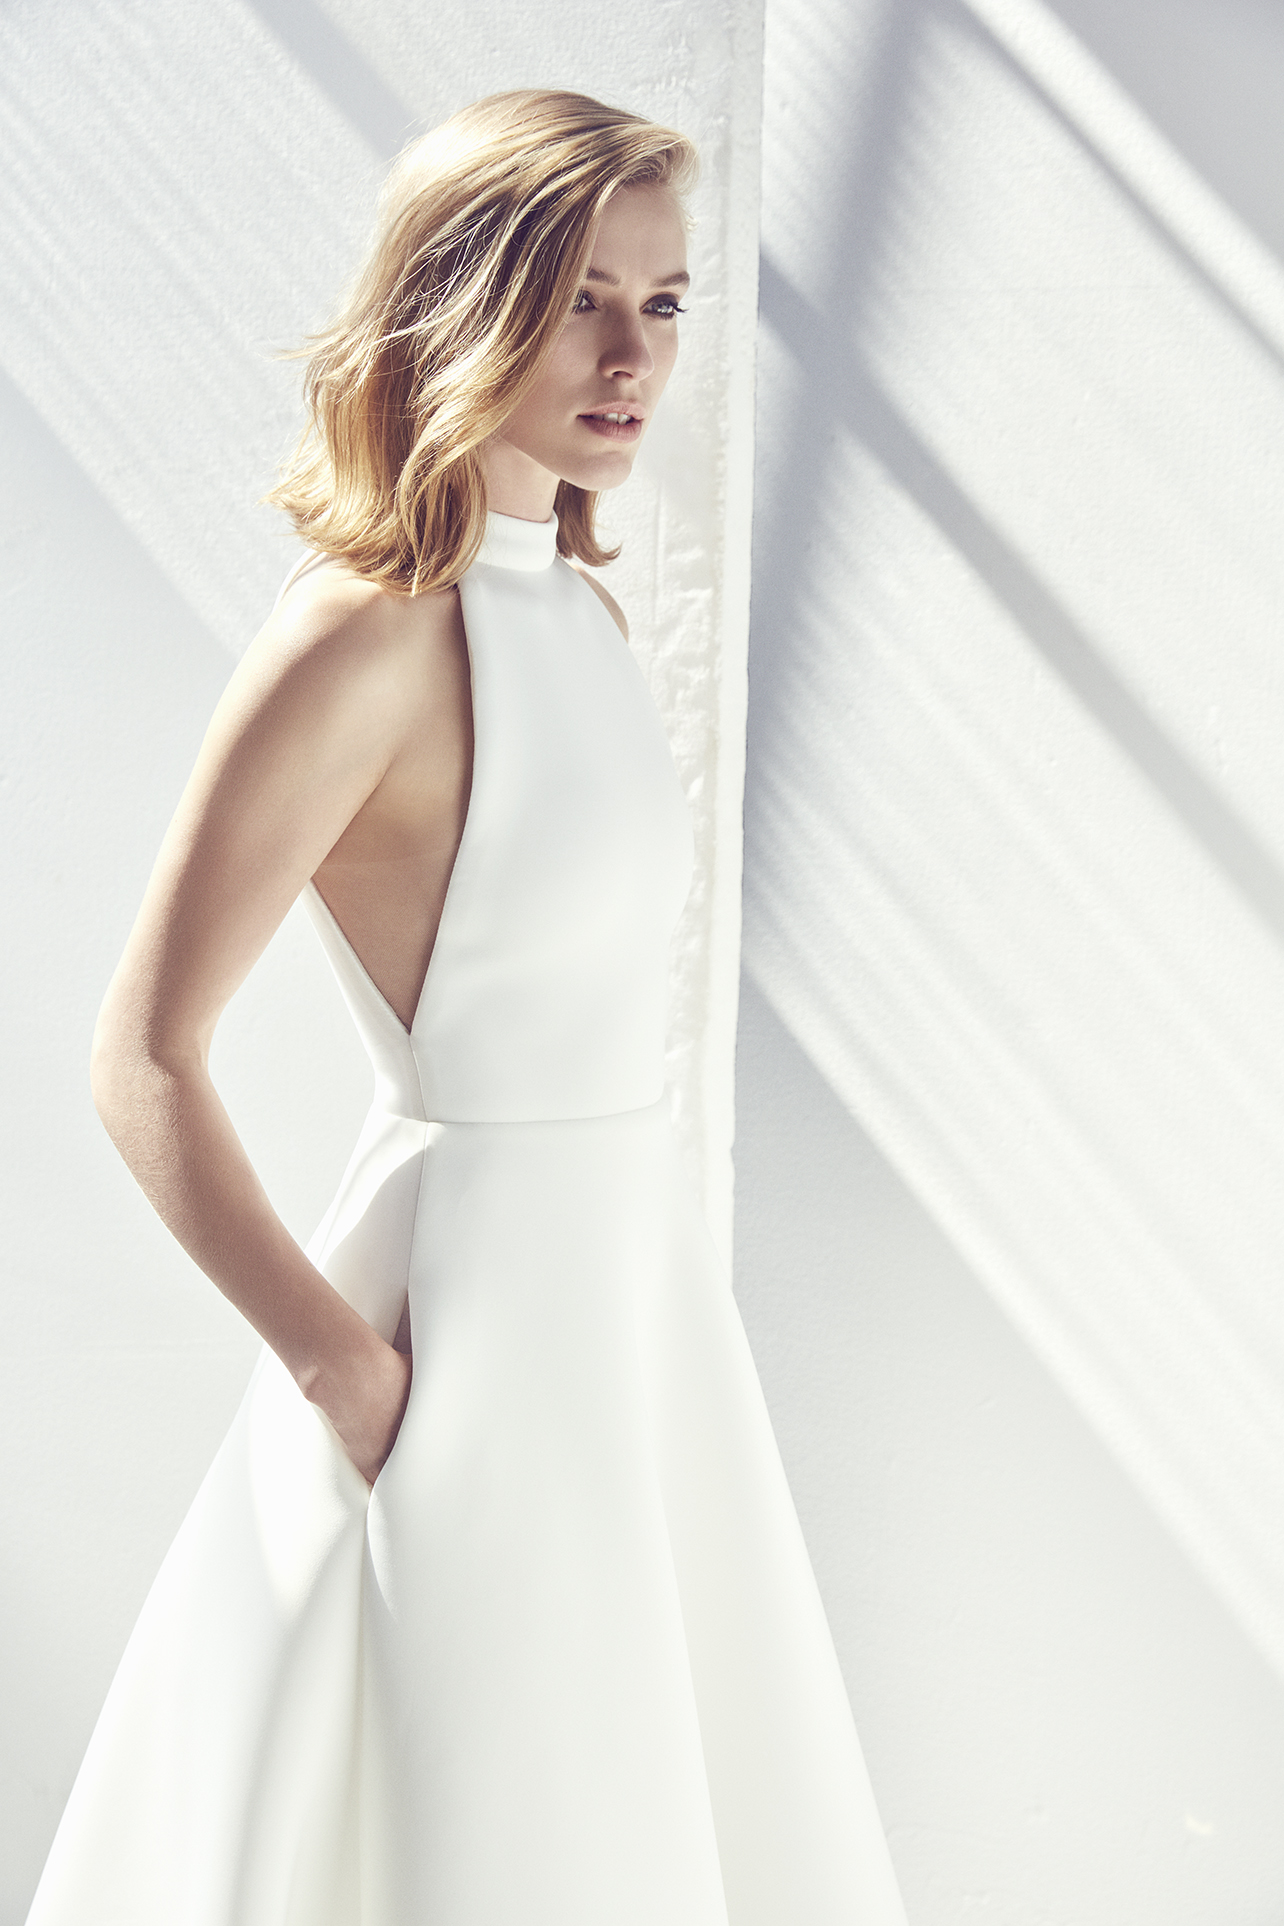 Futuristic Gown by Suzanne Harward | LOVE FIND CO.